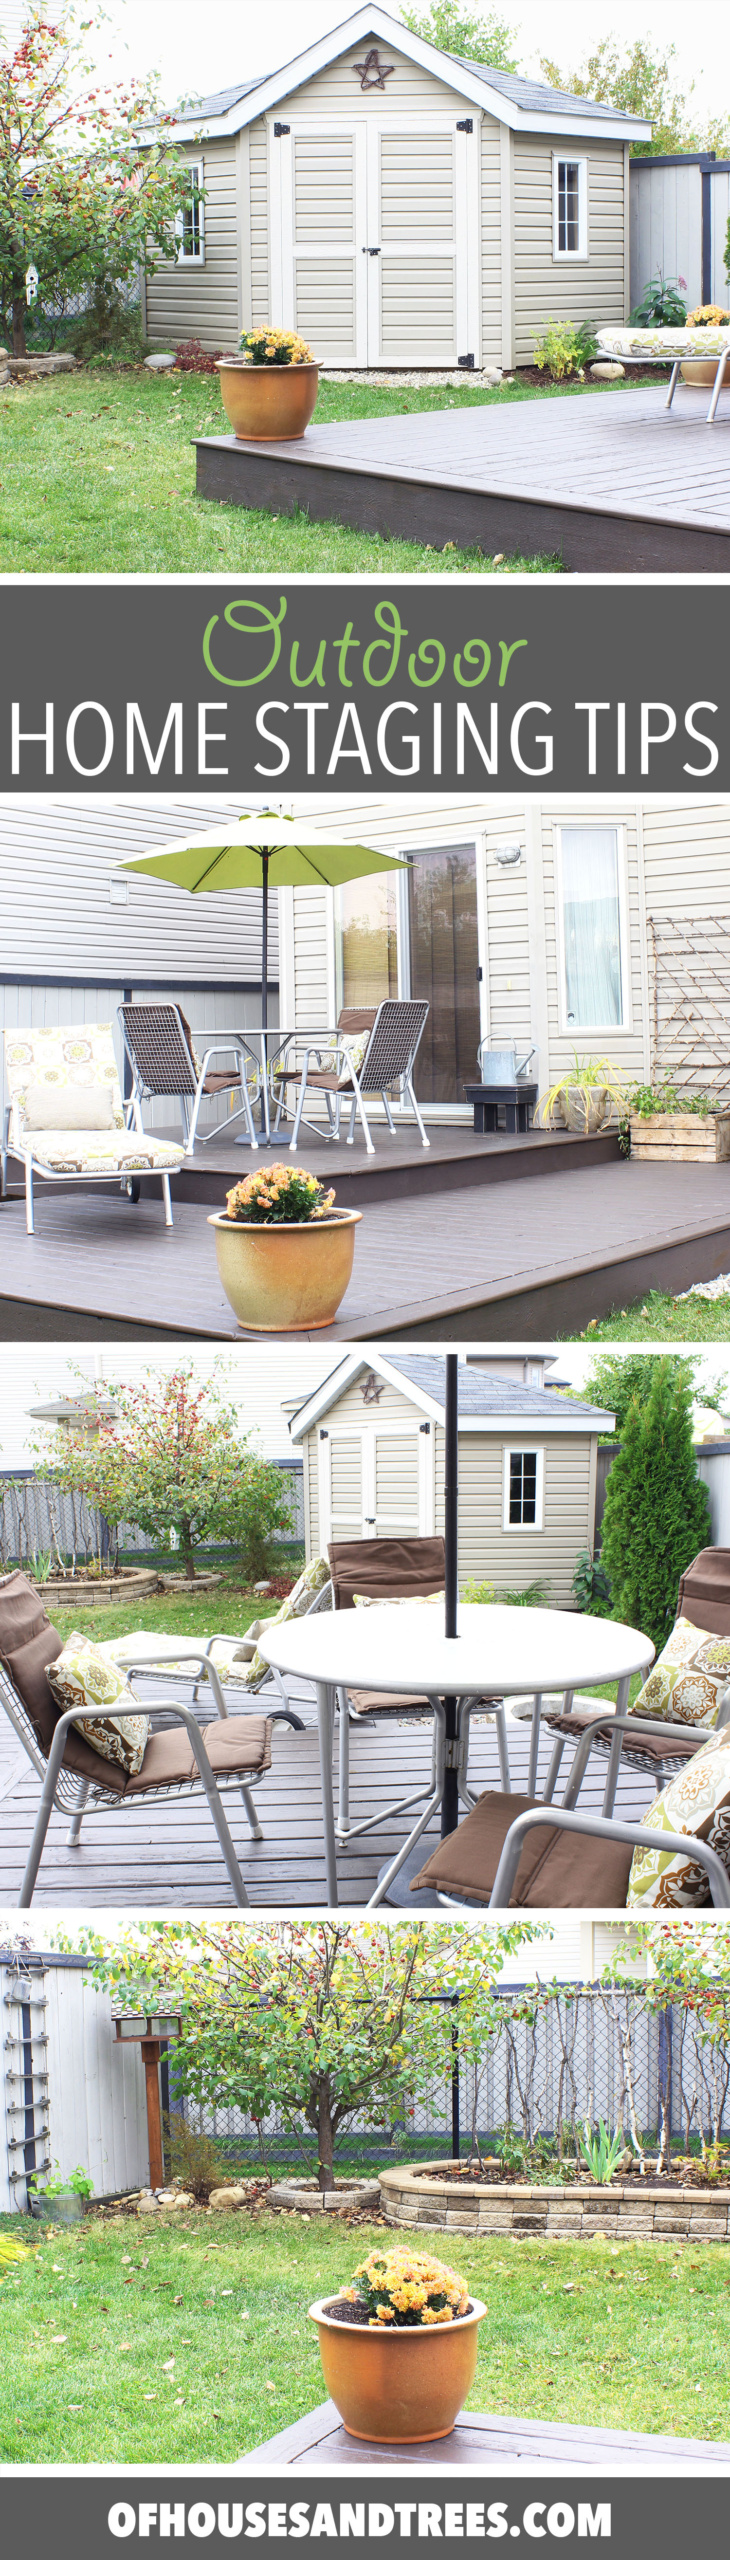 When it comes to selling, your outdoor spaces need to be just as beautiful as your indoor spaces. Here are a few home staging tips focusing on the yard.